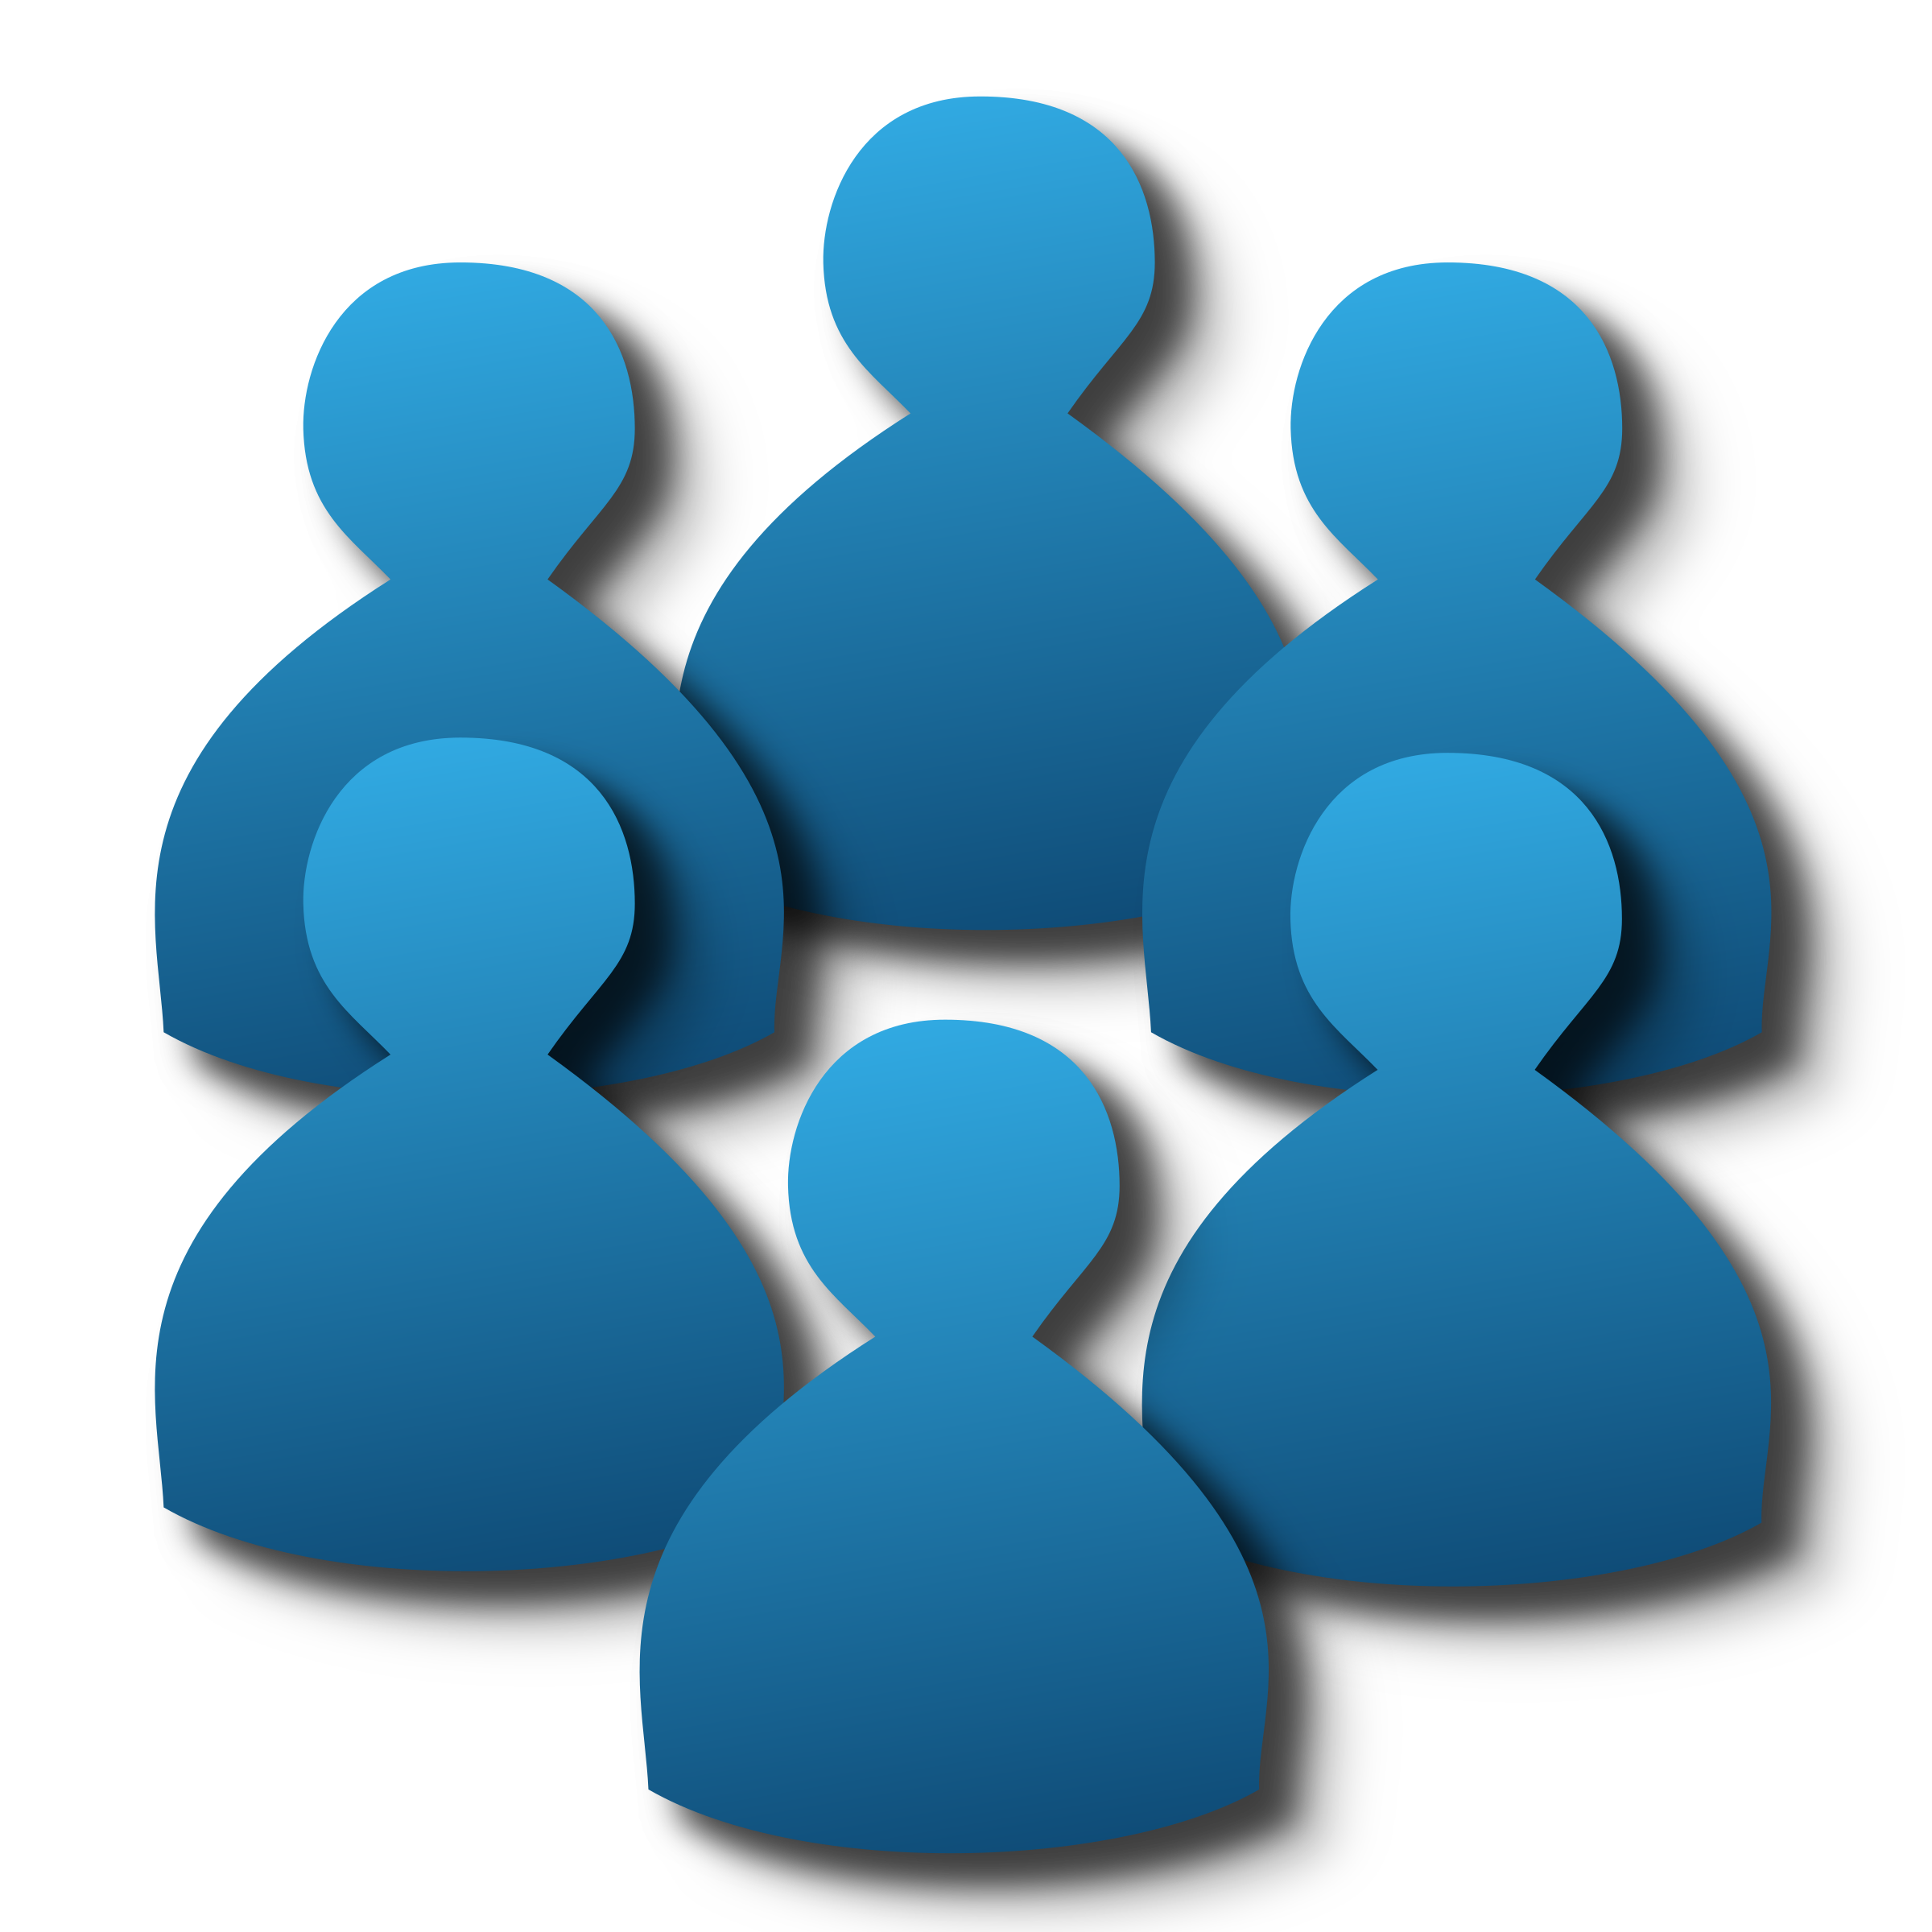 Group of members users icon image.